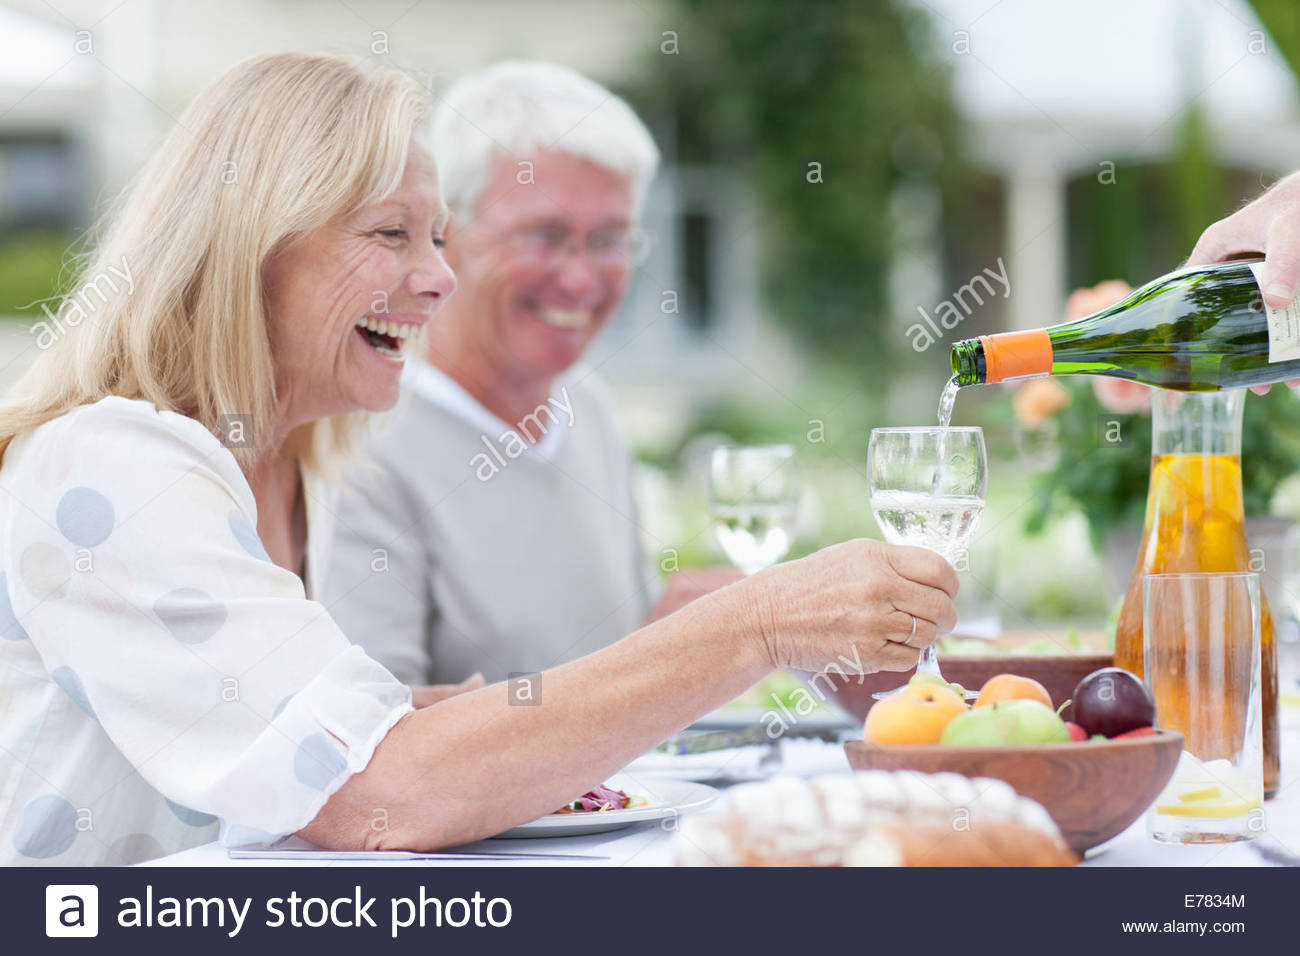 Senior adults enjoying wine at patio table - Stock Image